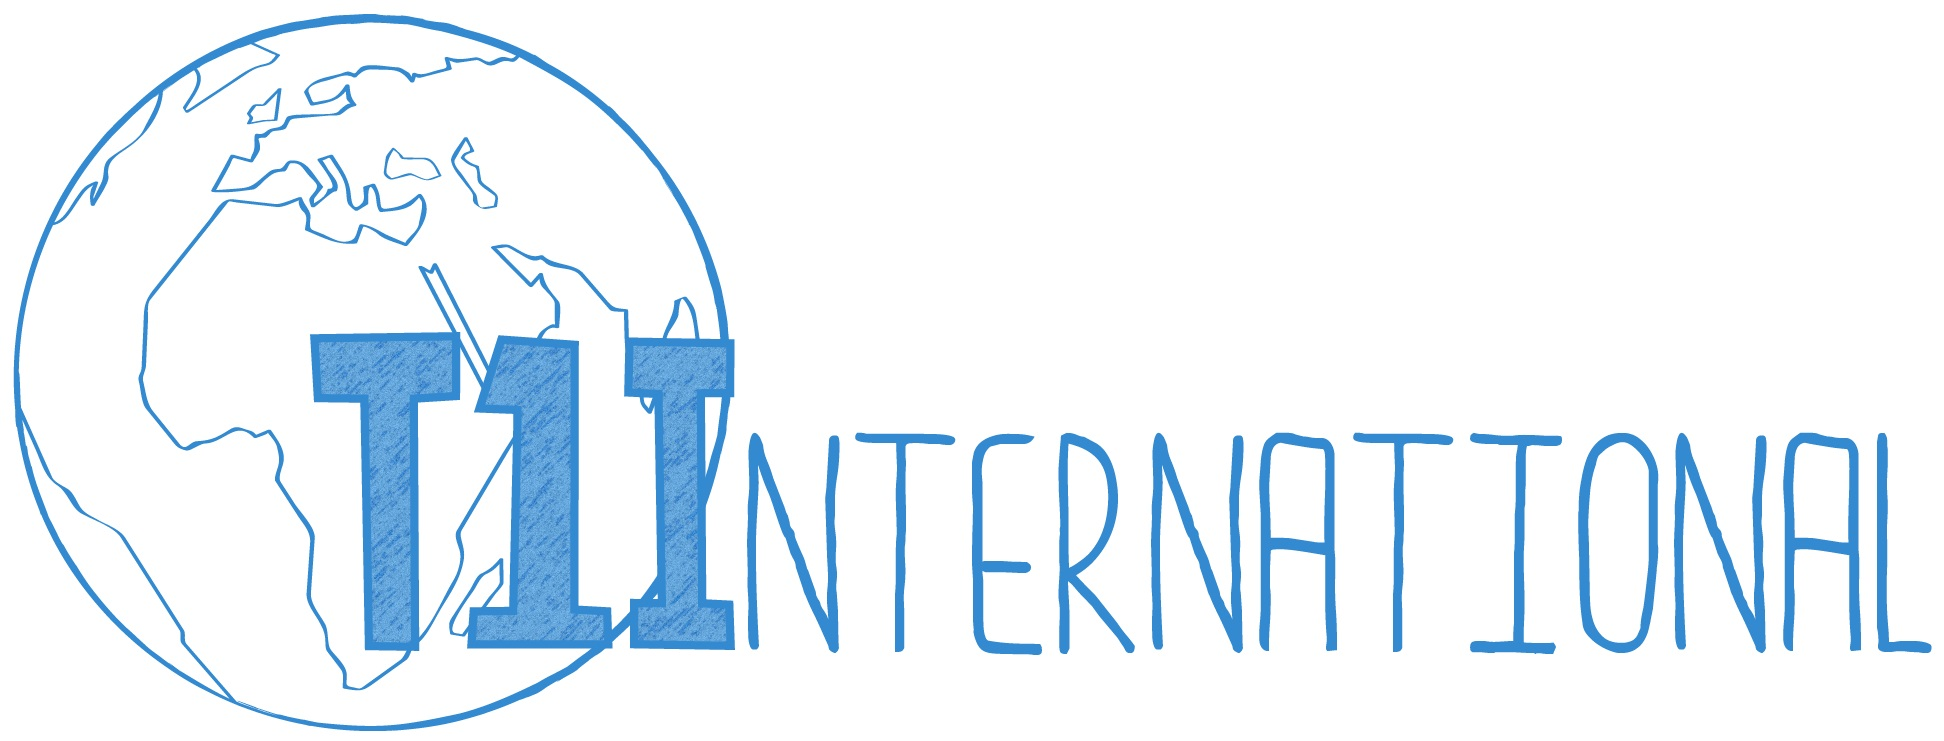 T1 International Logo